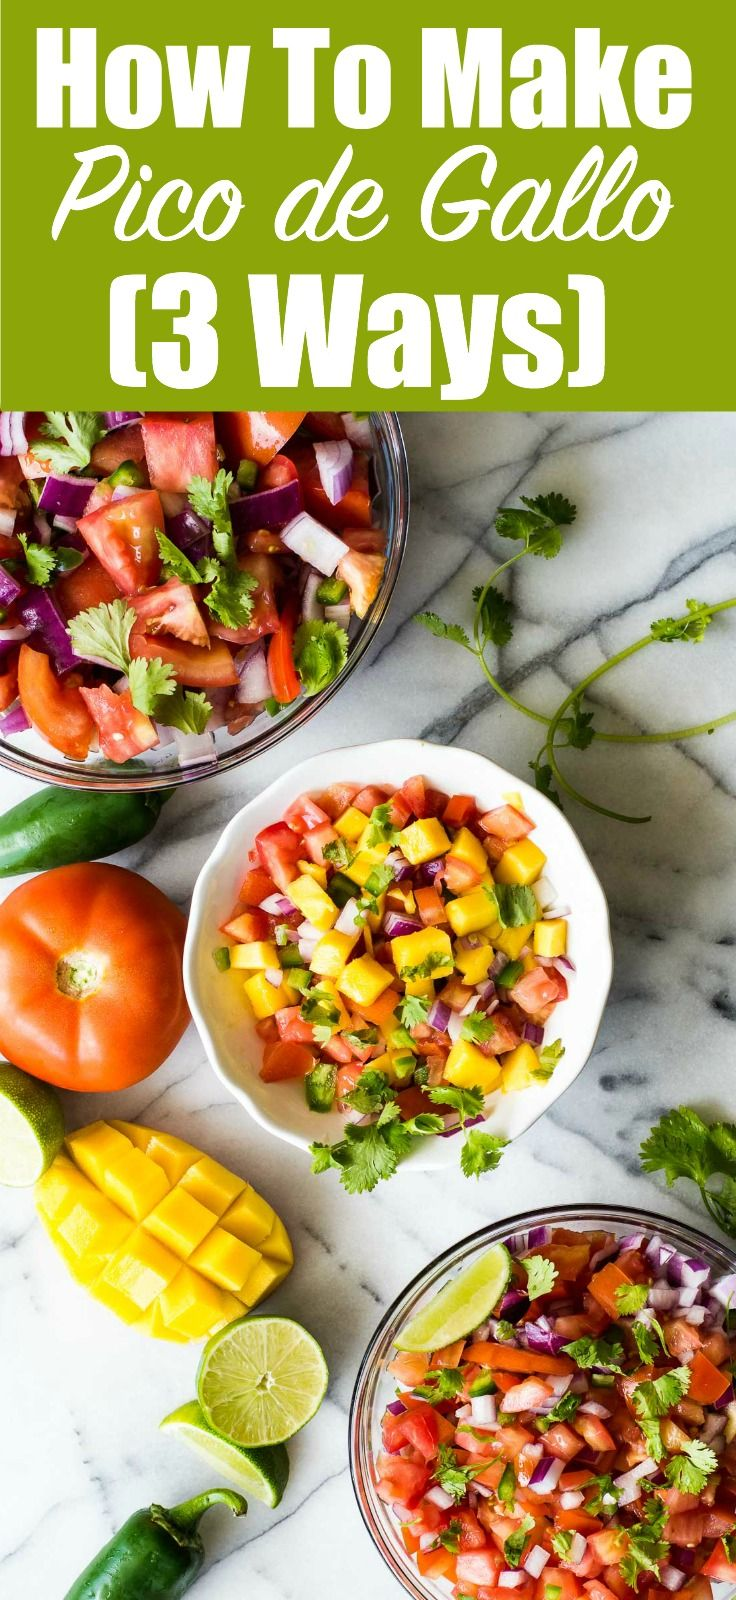 Learn how to make fresh pico de gallo at home!  I'm sharing 3 different ways, plus lots of ways that you can customize it to make it your own!